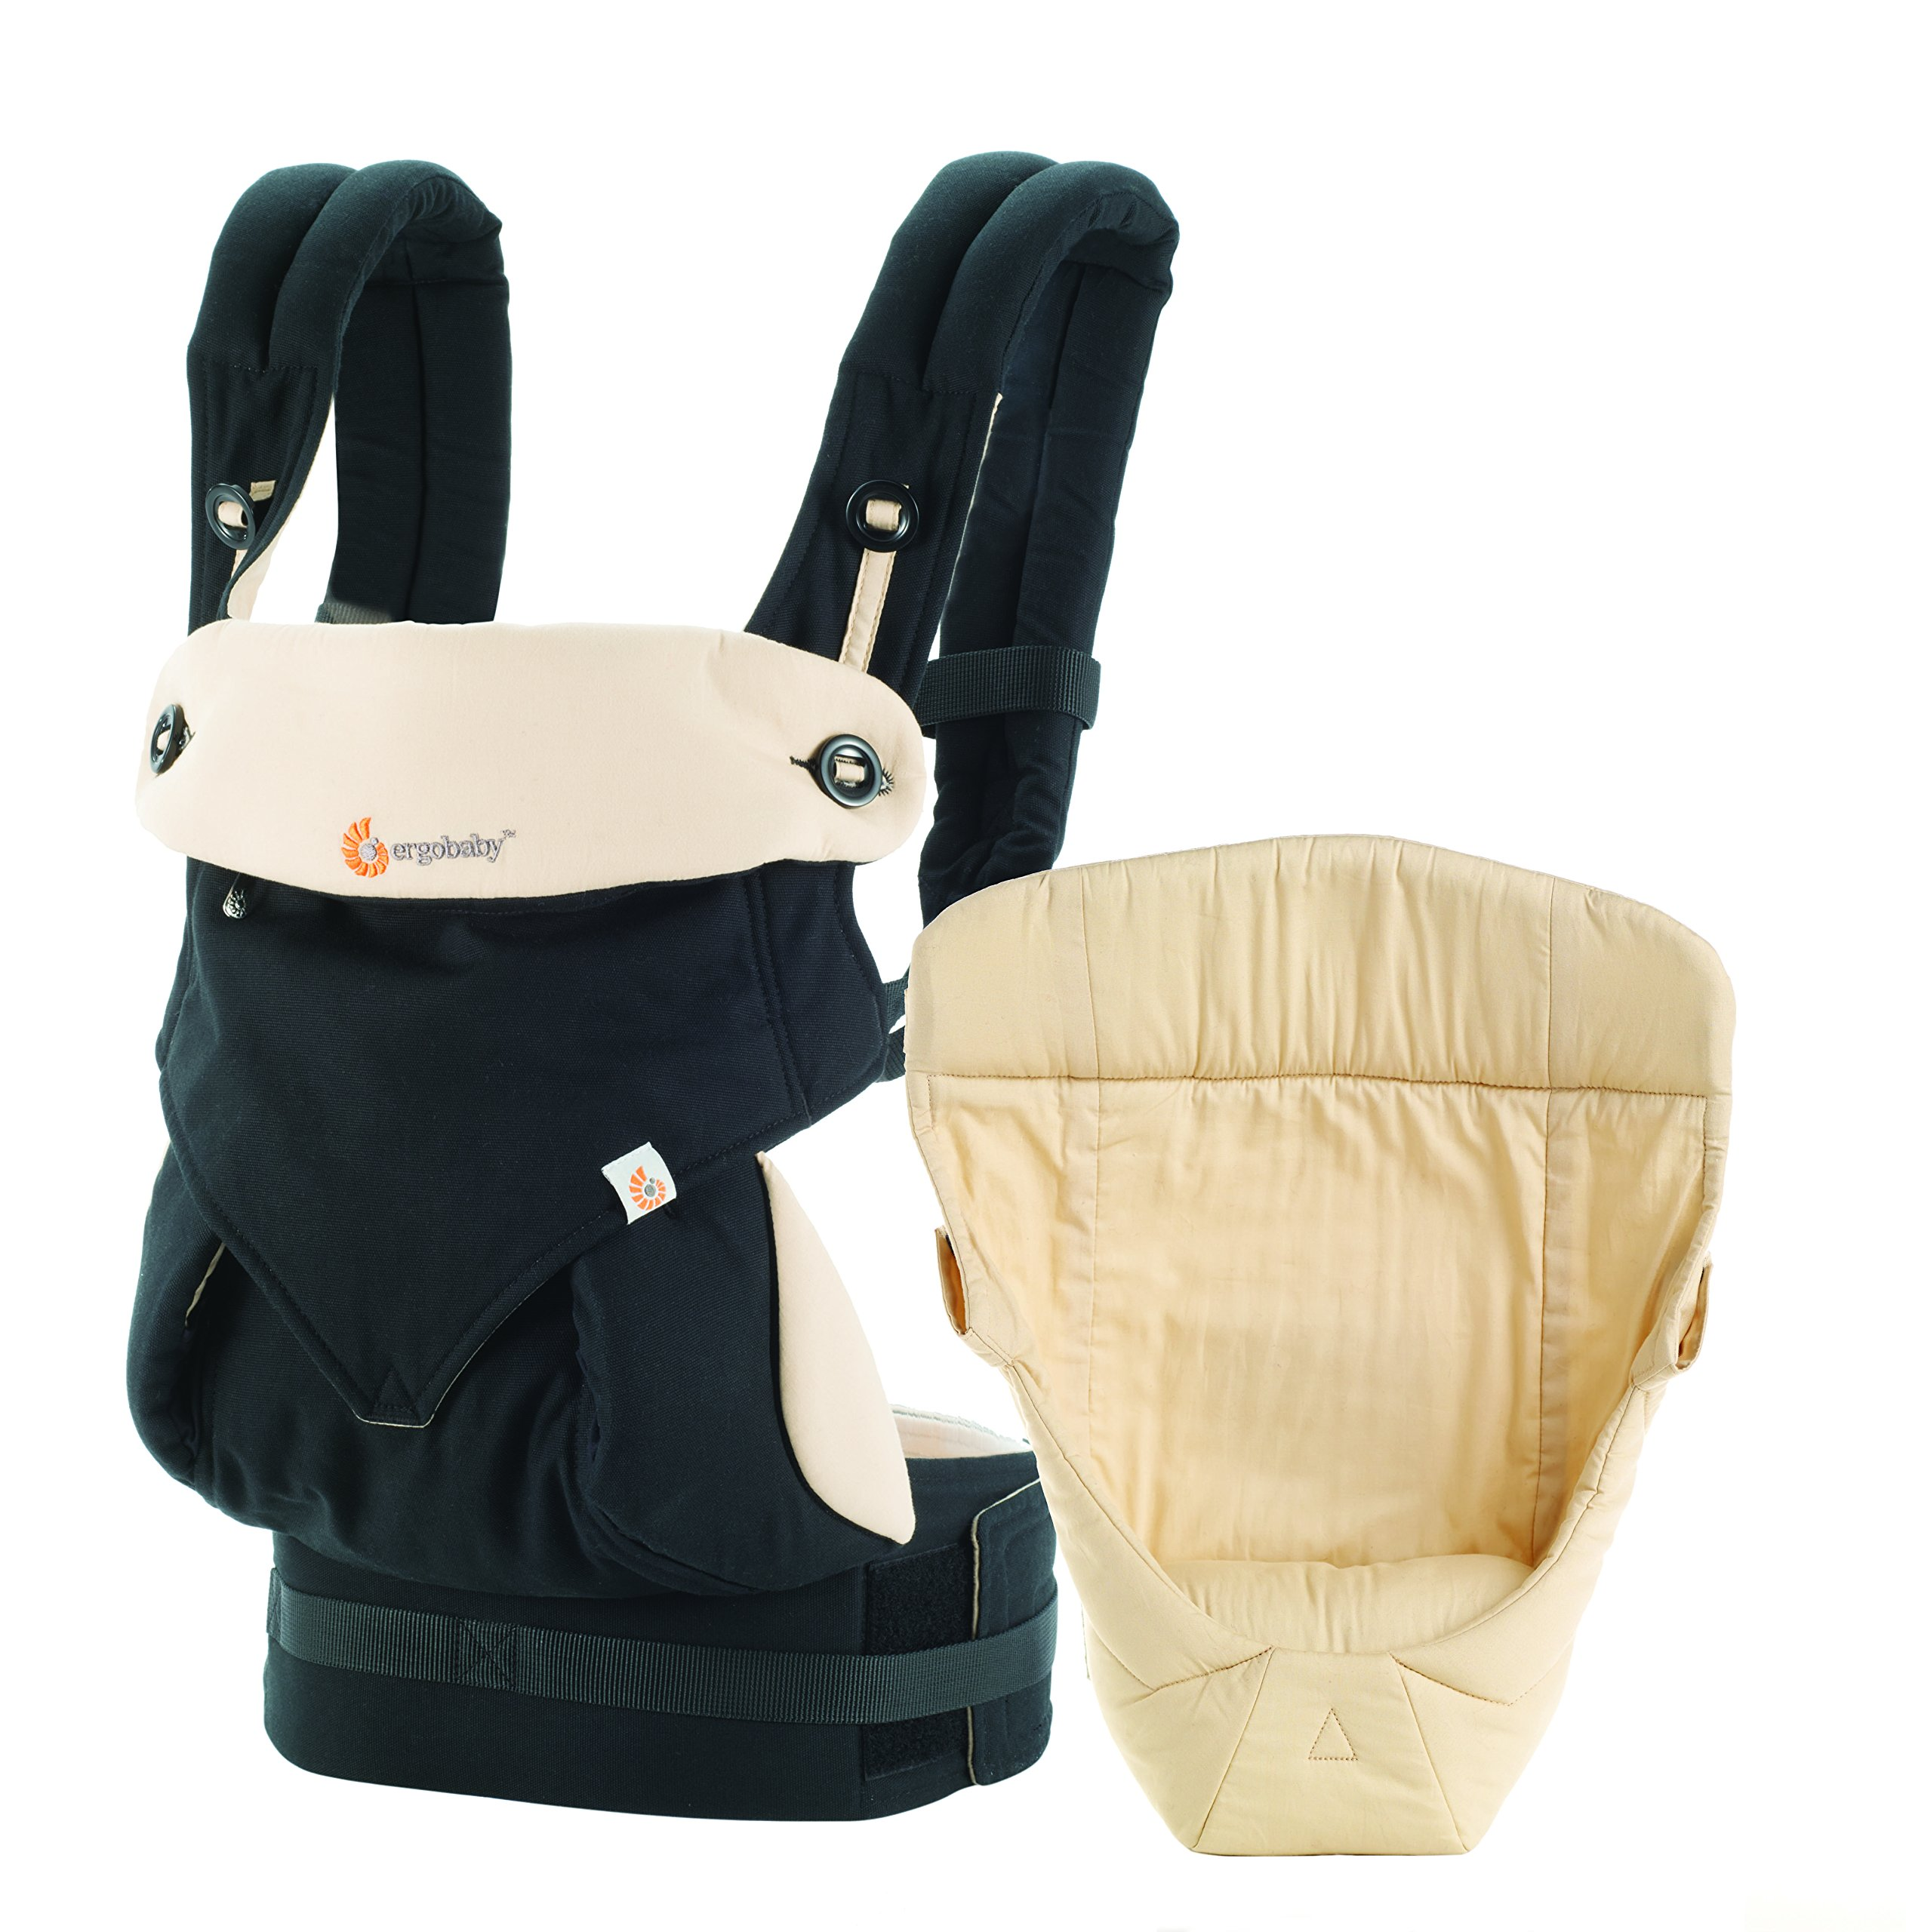 Ergobaby Baby Carrier for Newborn to Toddler incl Infant Insert, 360 Black/Camel 4-Position Ergonomic Child Carrier and Backpack Ergobaby 4 ergonomic wearing positions: parent facing, on the back, on the hip and on the front facing outwards Structured bucket seat helps to maintain the correct frog-leg position. Wide waistband for extra back support Optimum comfort when worn thanks to adjustable, extra-wide waistband to support the lower back 1